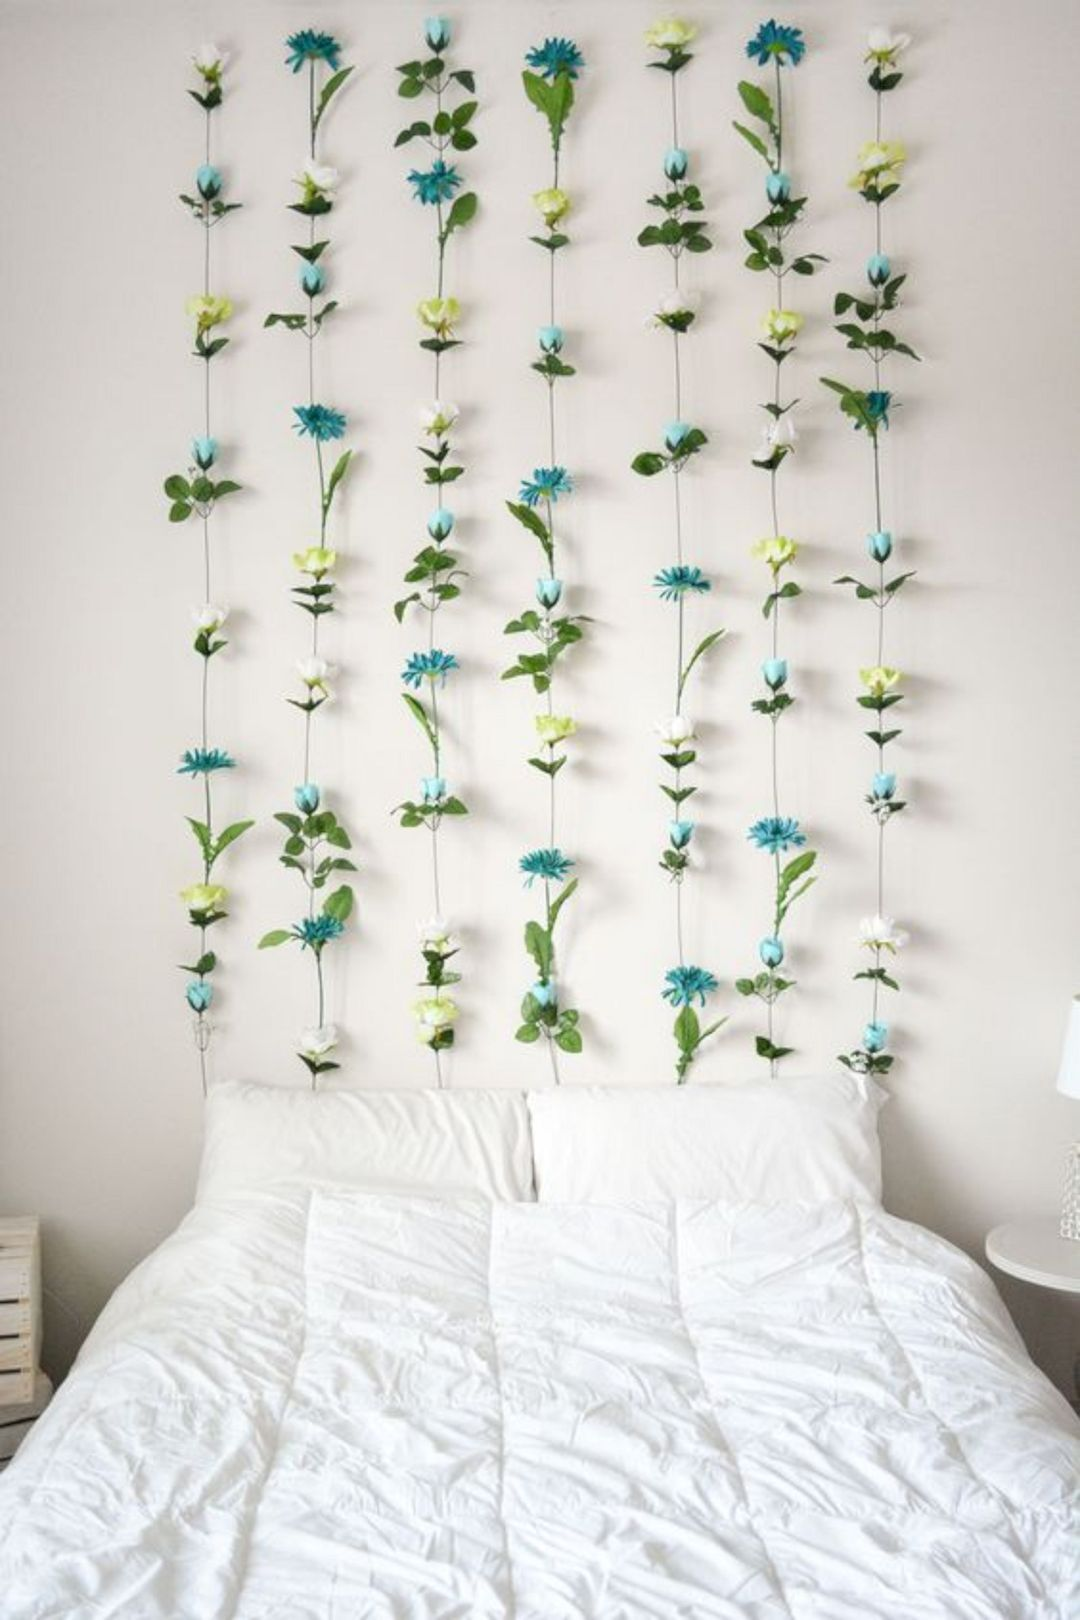 16 Cool Dorm Room Decorating Ideas | Bedrooms, Apartments and Dorm Bedroom Decorating Ideas With Green Html on curtains with green, home decorating with green, pink with green, home office with green, art with green, books with green, bedroom paint color ideas for small rooms, small bedroom ideas green, interior decorating with green, rugs with green, teen bedroom ideas with green, minimalist living room with green, fabrics with green, decorate with green, home decorators with green,